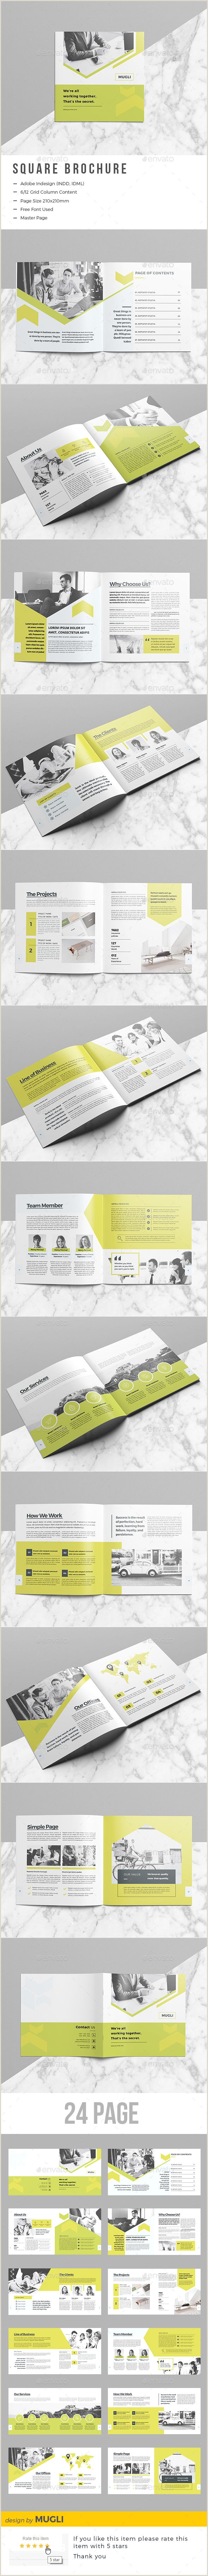 Medical Brochure Template Brochure Template Indesign Indd 24 Pages